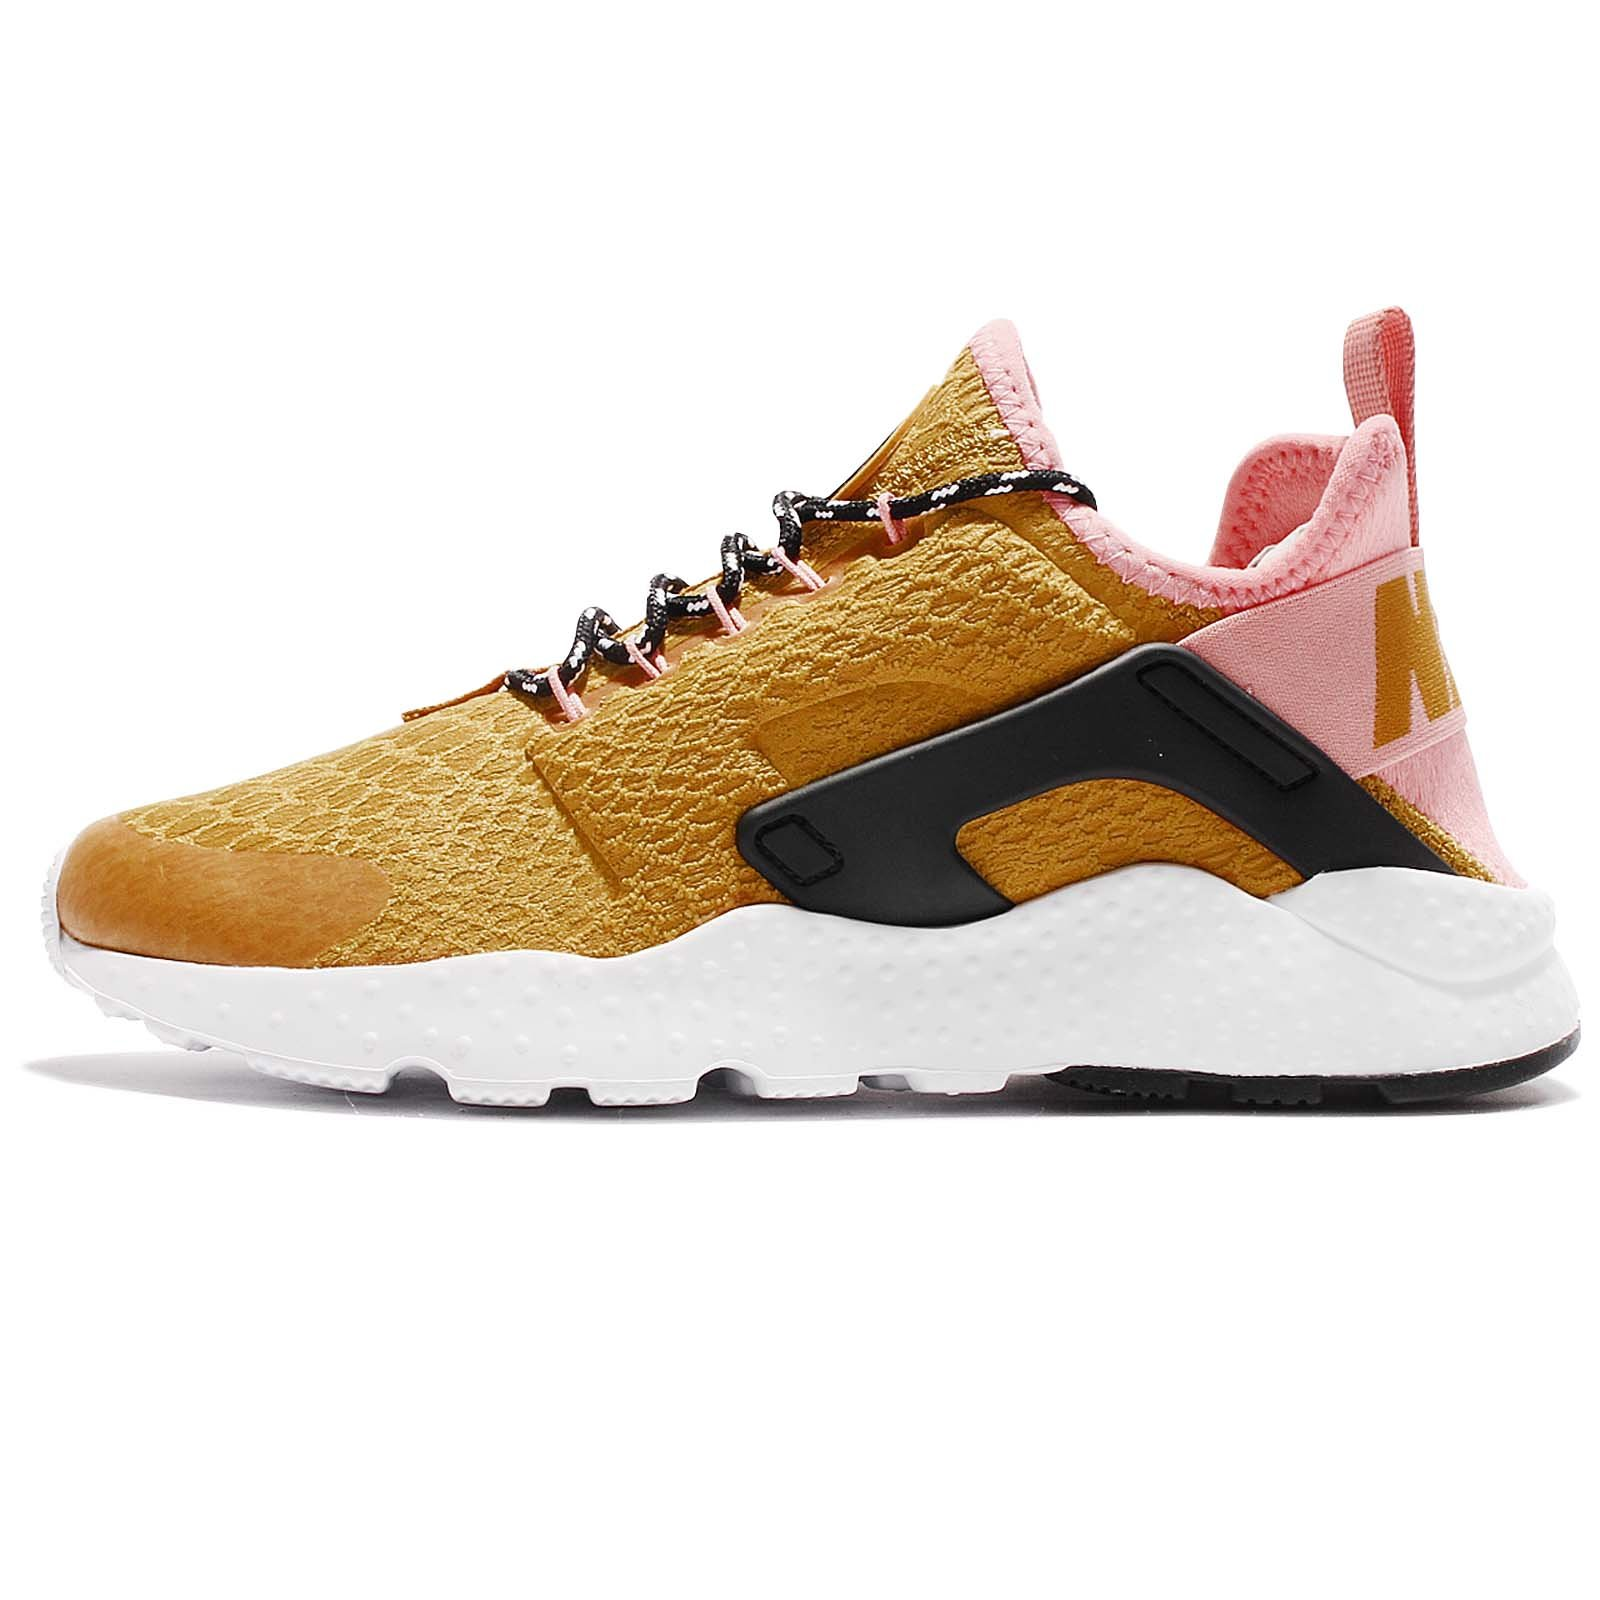 5f8f46a4a682 Galleon - NIKE Women s Air Huarache Run Ultra SE Gold Dart Black 859516-700  (Size  8.5)